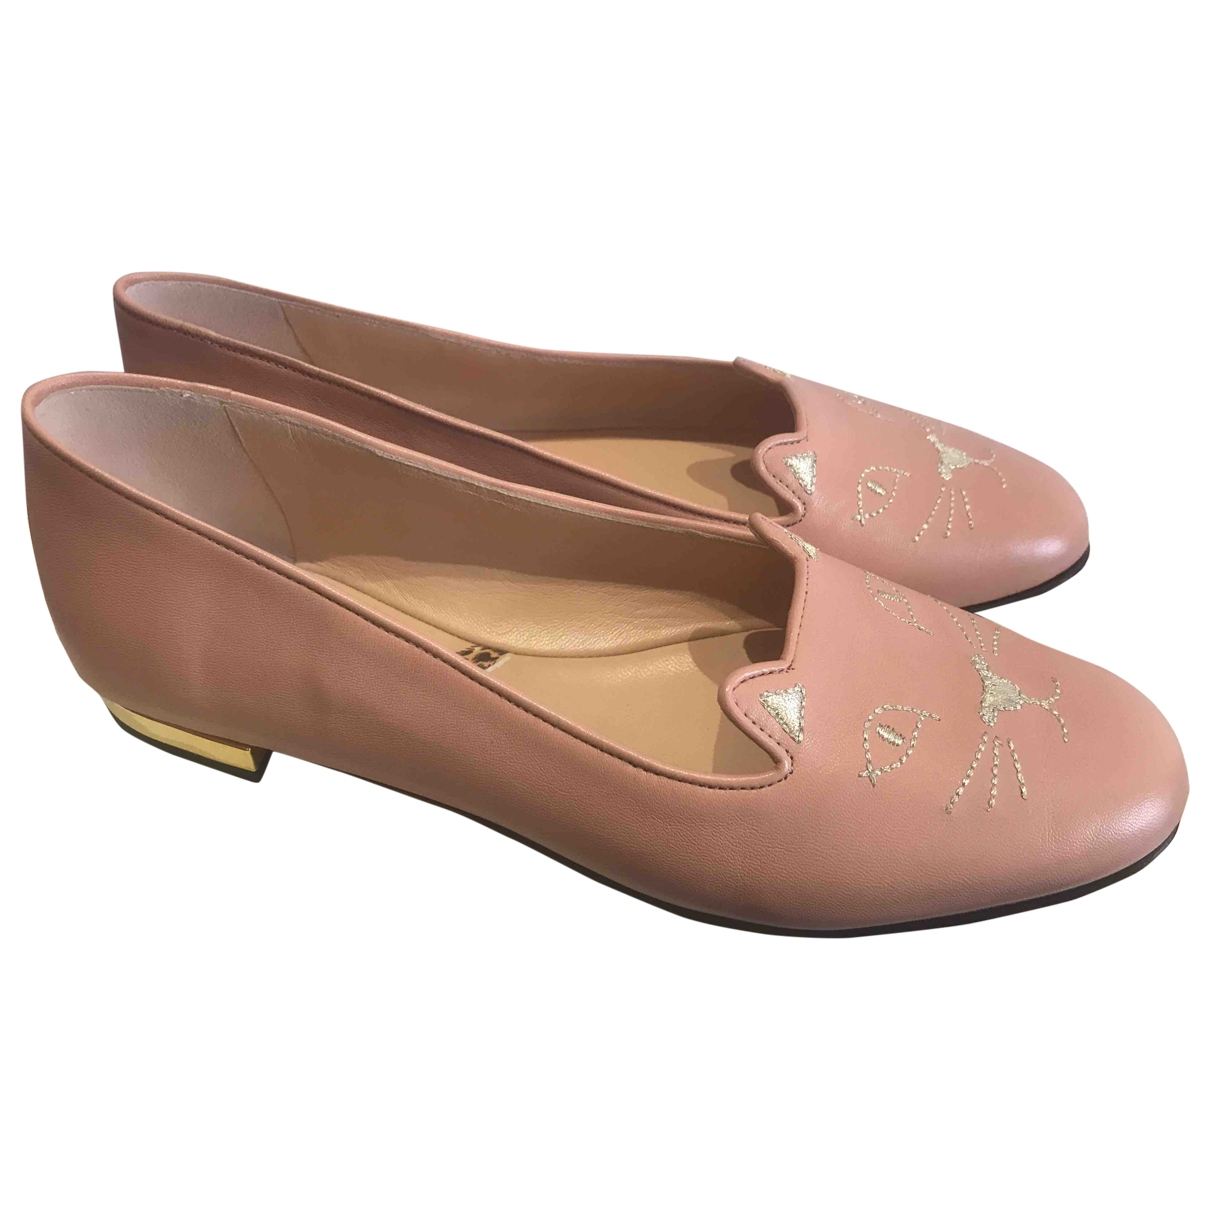 Charlotte Olympia Kitty Pink Leather Ballet flats for Women 37.5 EU